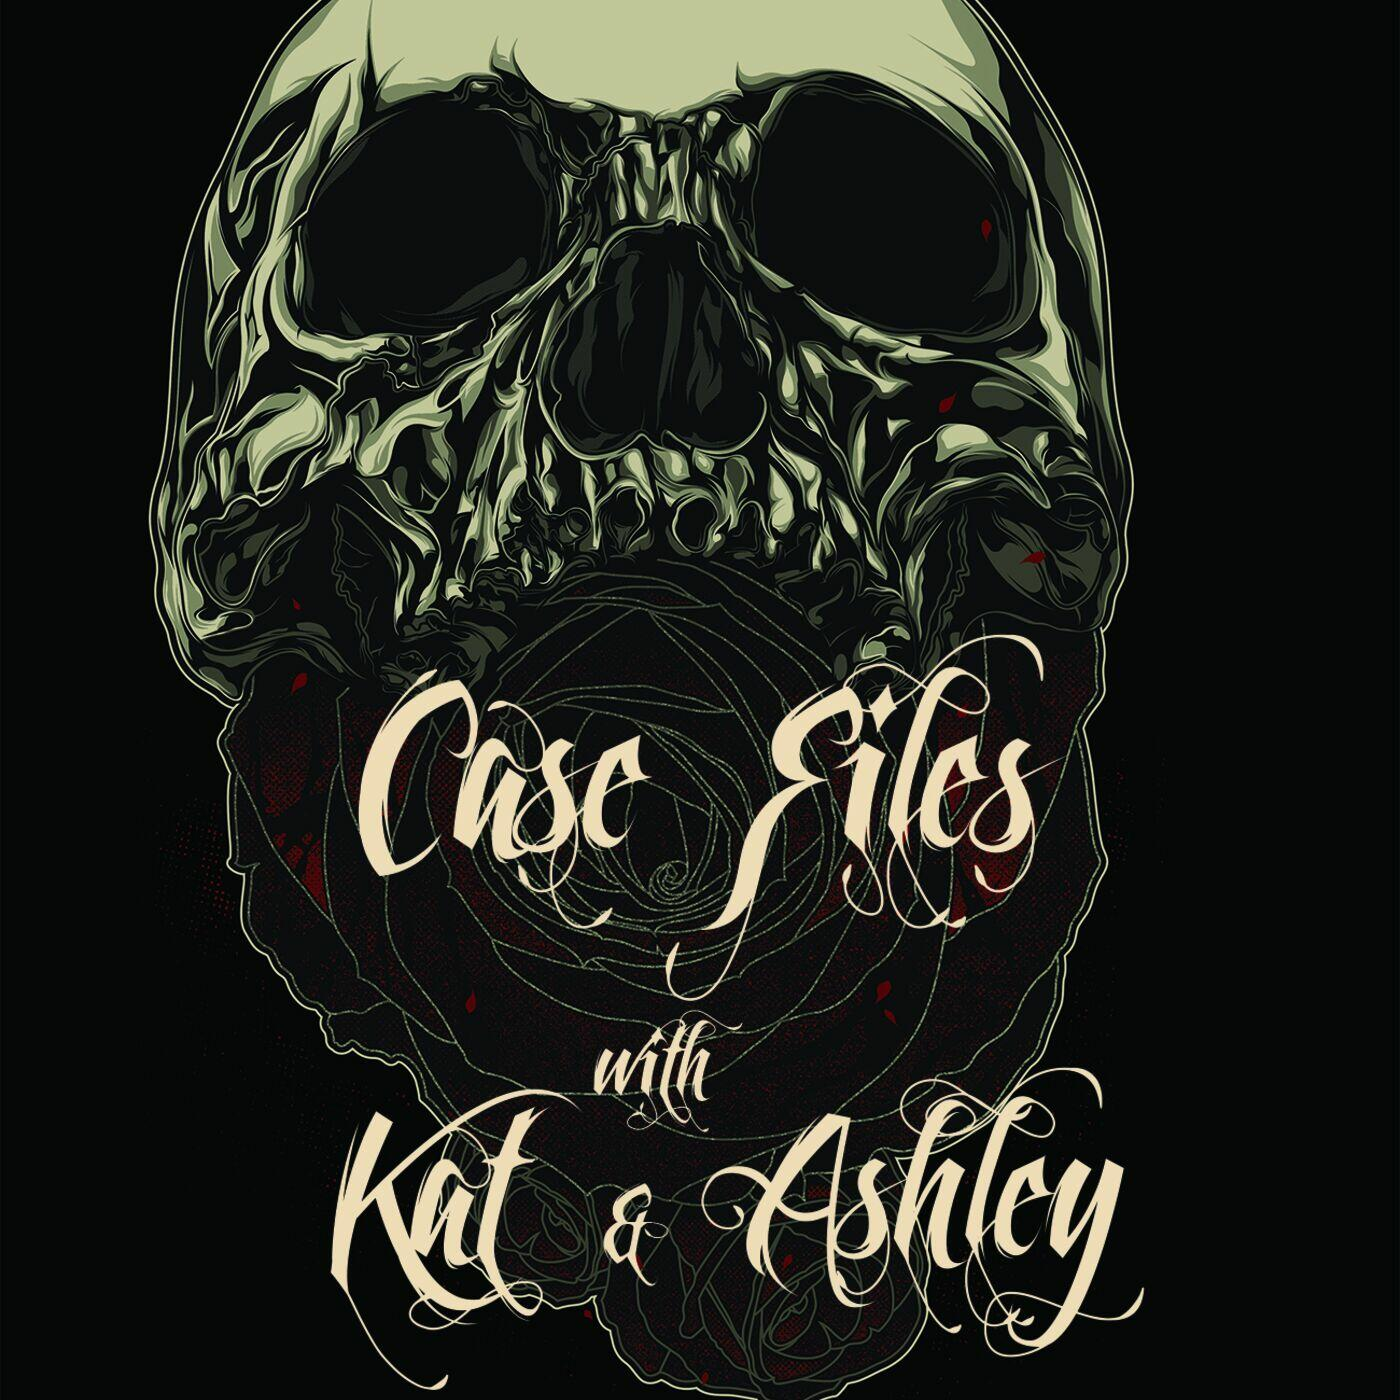 Case Files with Kat and Ashley